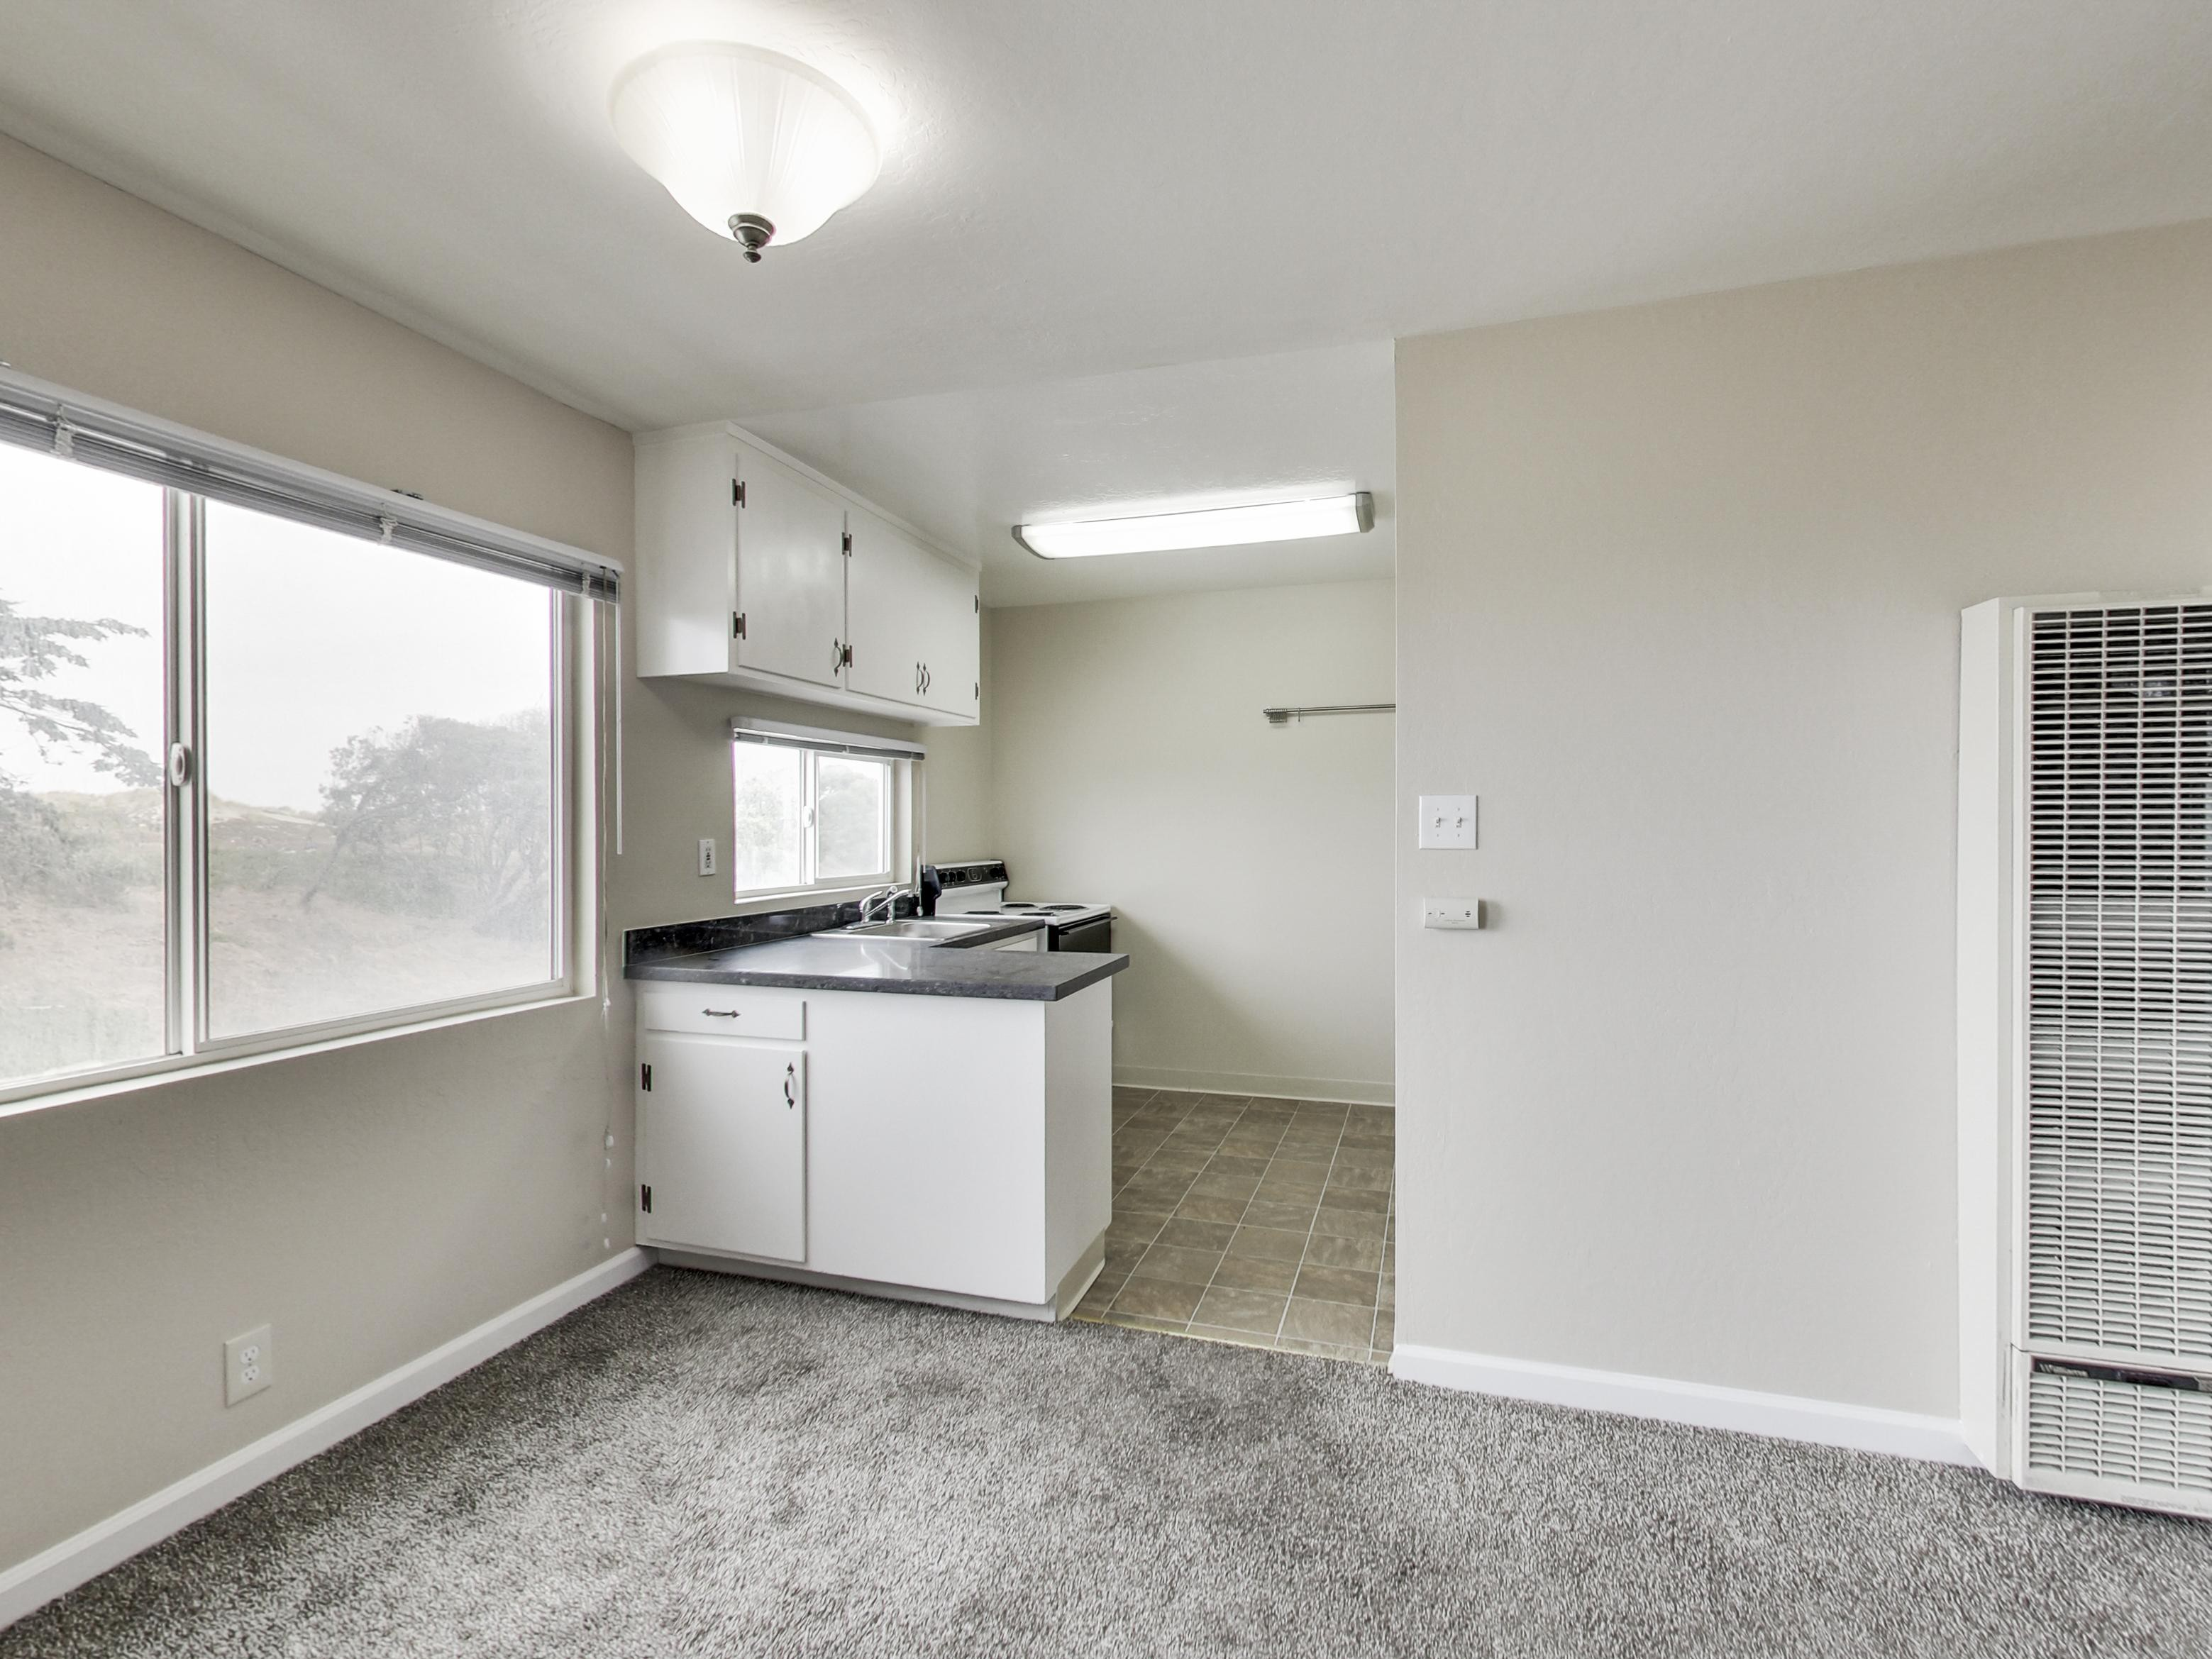 The Cheapest Apartment Rentals In The Outer Sunset, Right Now